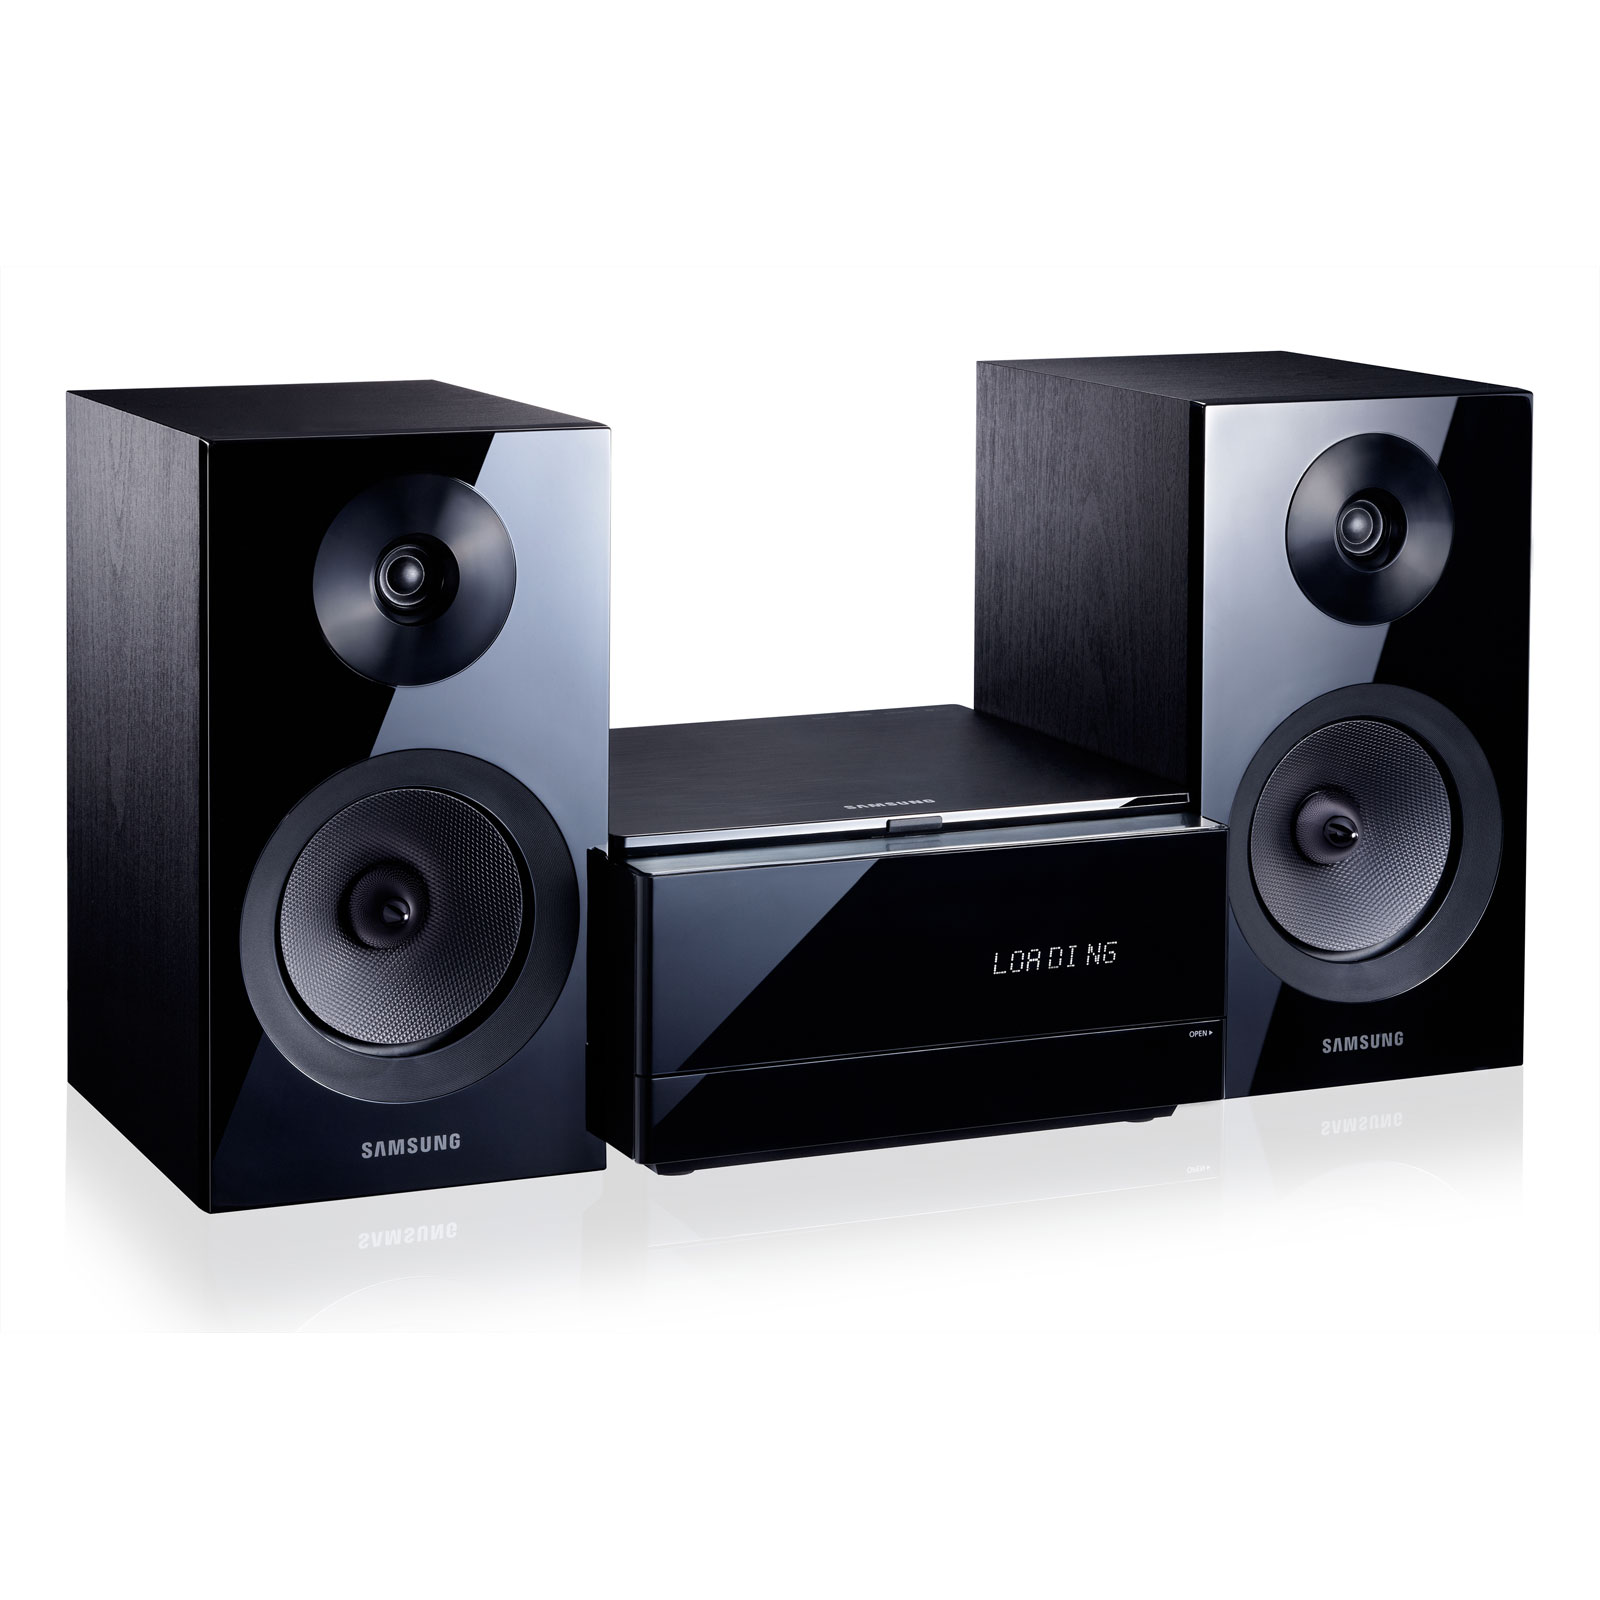 samsung mm e430d cha ne hifi samsung sur ldlc. Black Bedroom Furniture Sets. Home Design Ideas